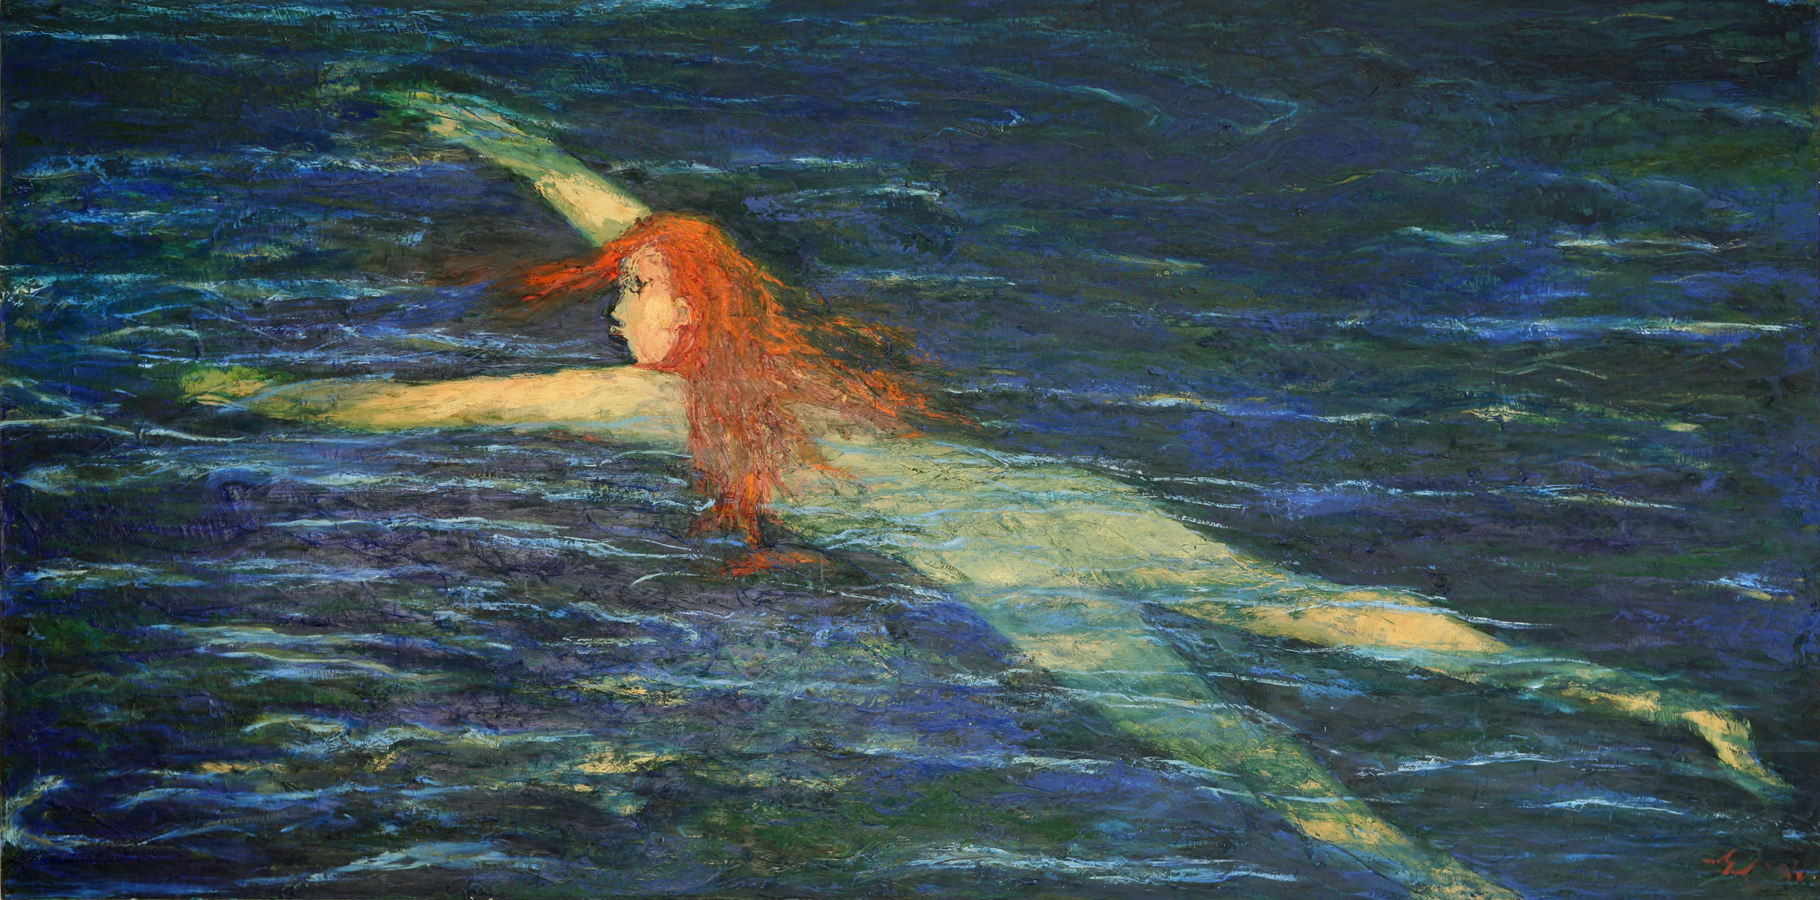 Red Haired Swimmer - Water Series, Exhibition at the Royal Over-seas League, London 1994